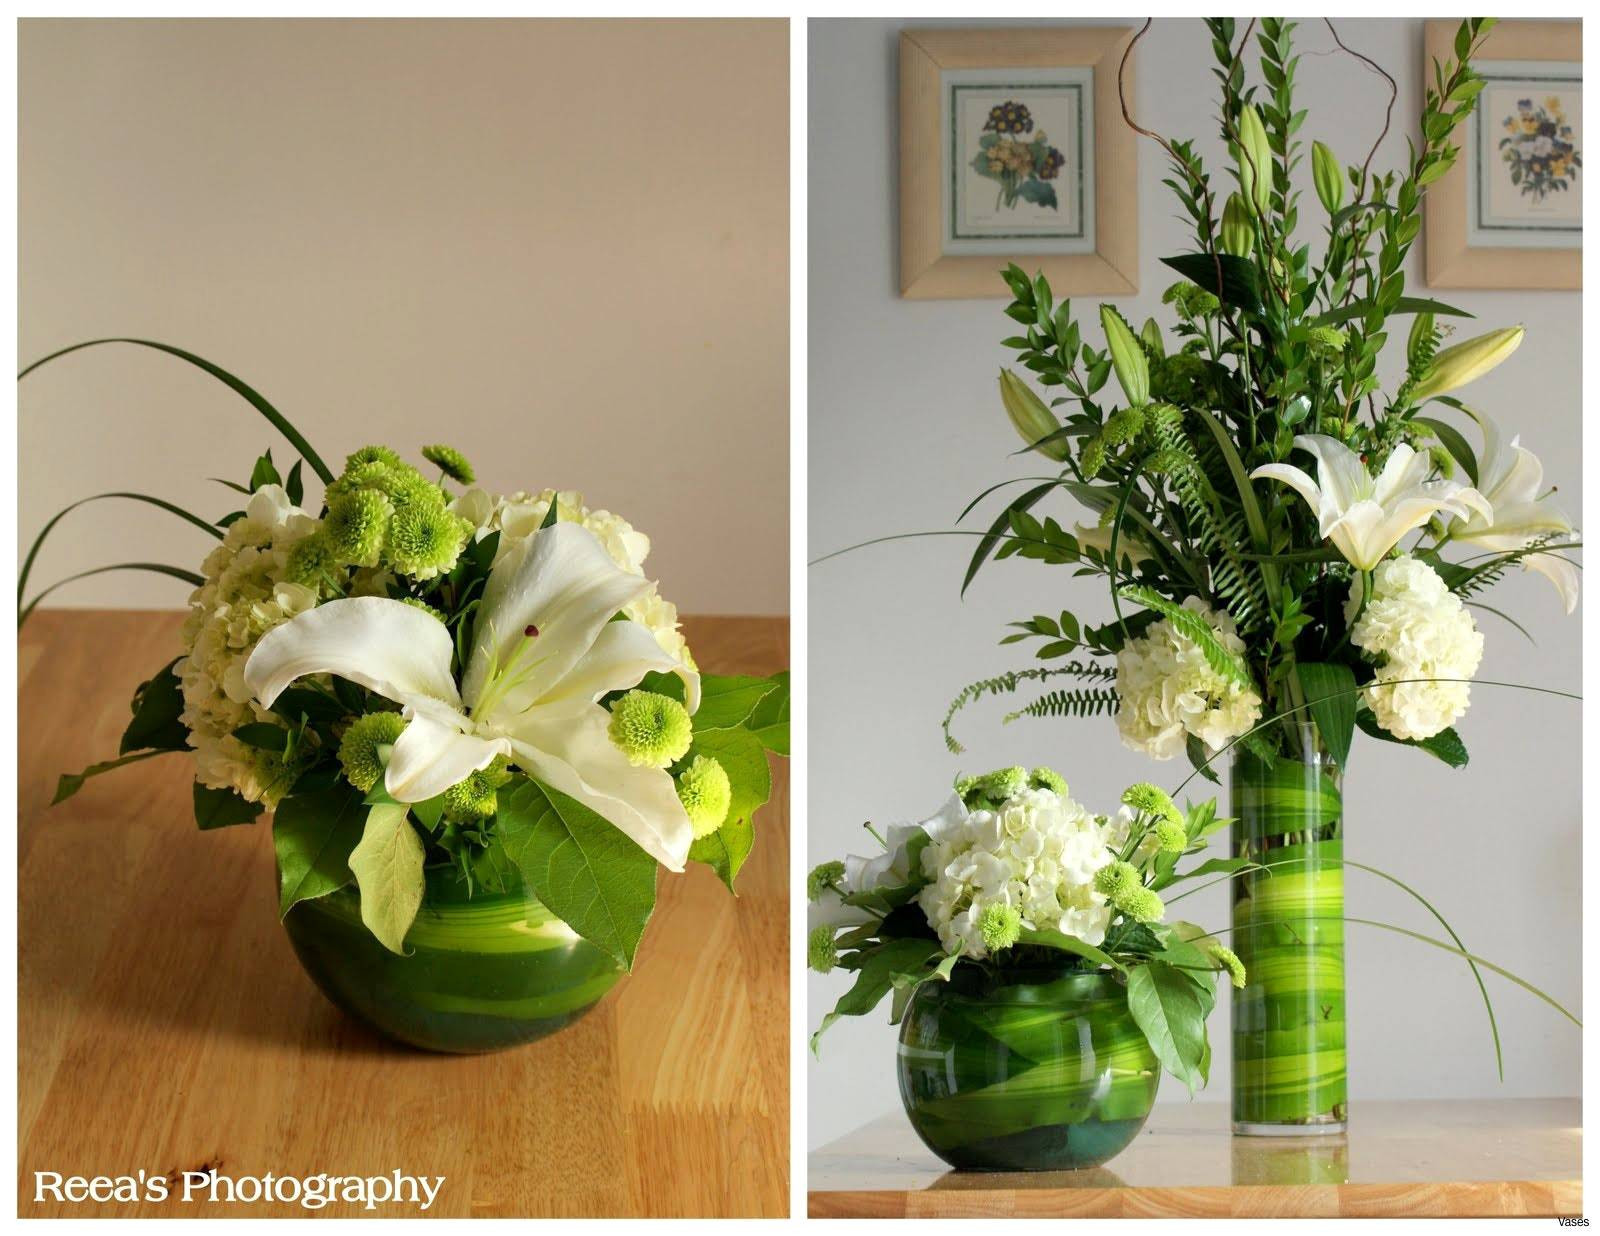 goblet vase flower arrangements of green and white decorations classic h vases for flower arrangements with green and white decorations classic h vases for flower arrangements i 0d dry inspiration picture design